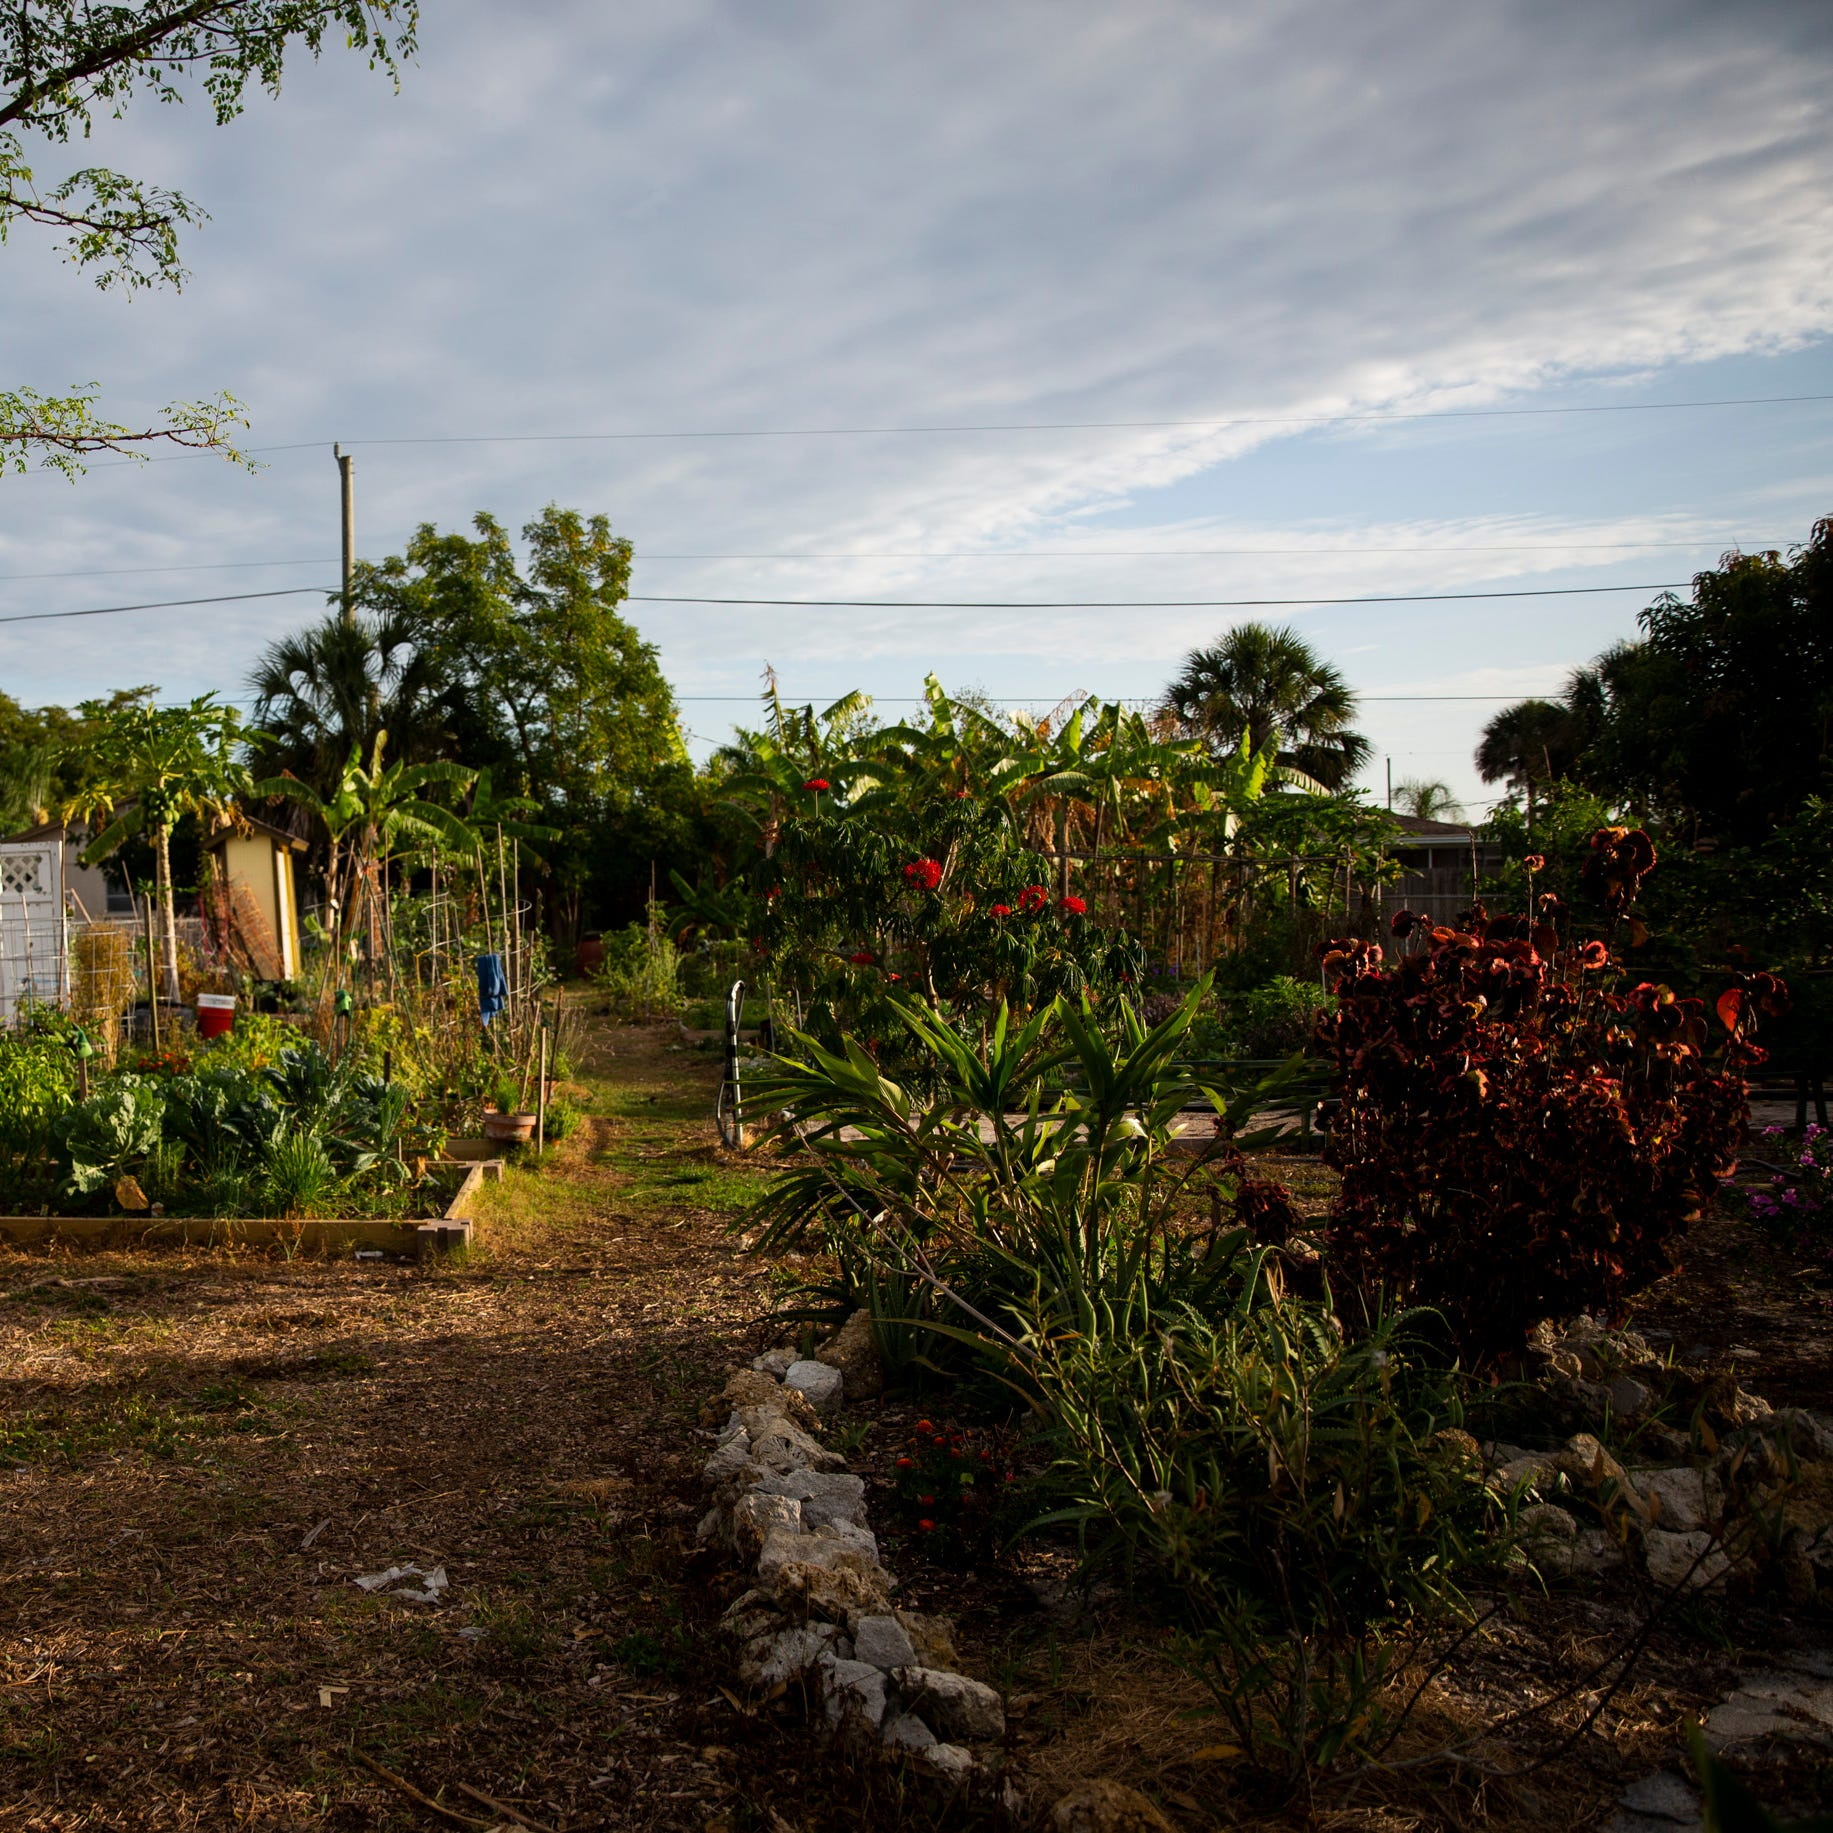 Community garden grows discontent with neighbors, faces county code complaints